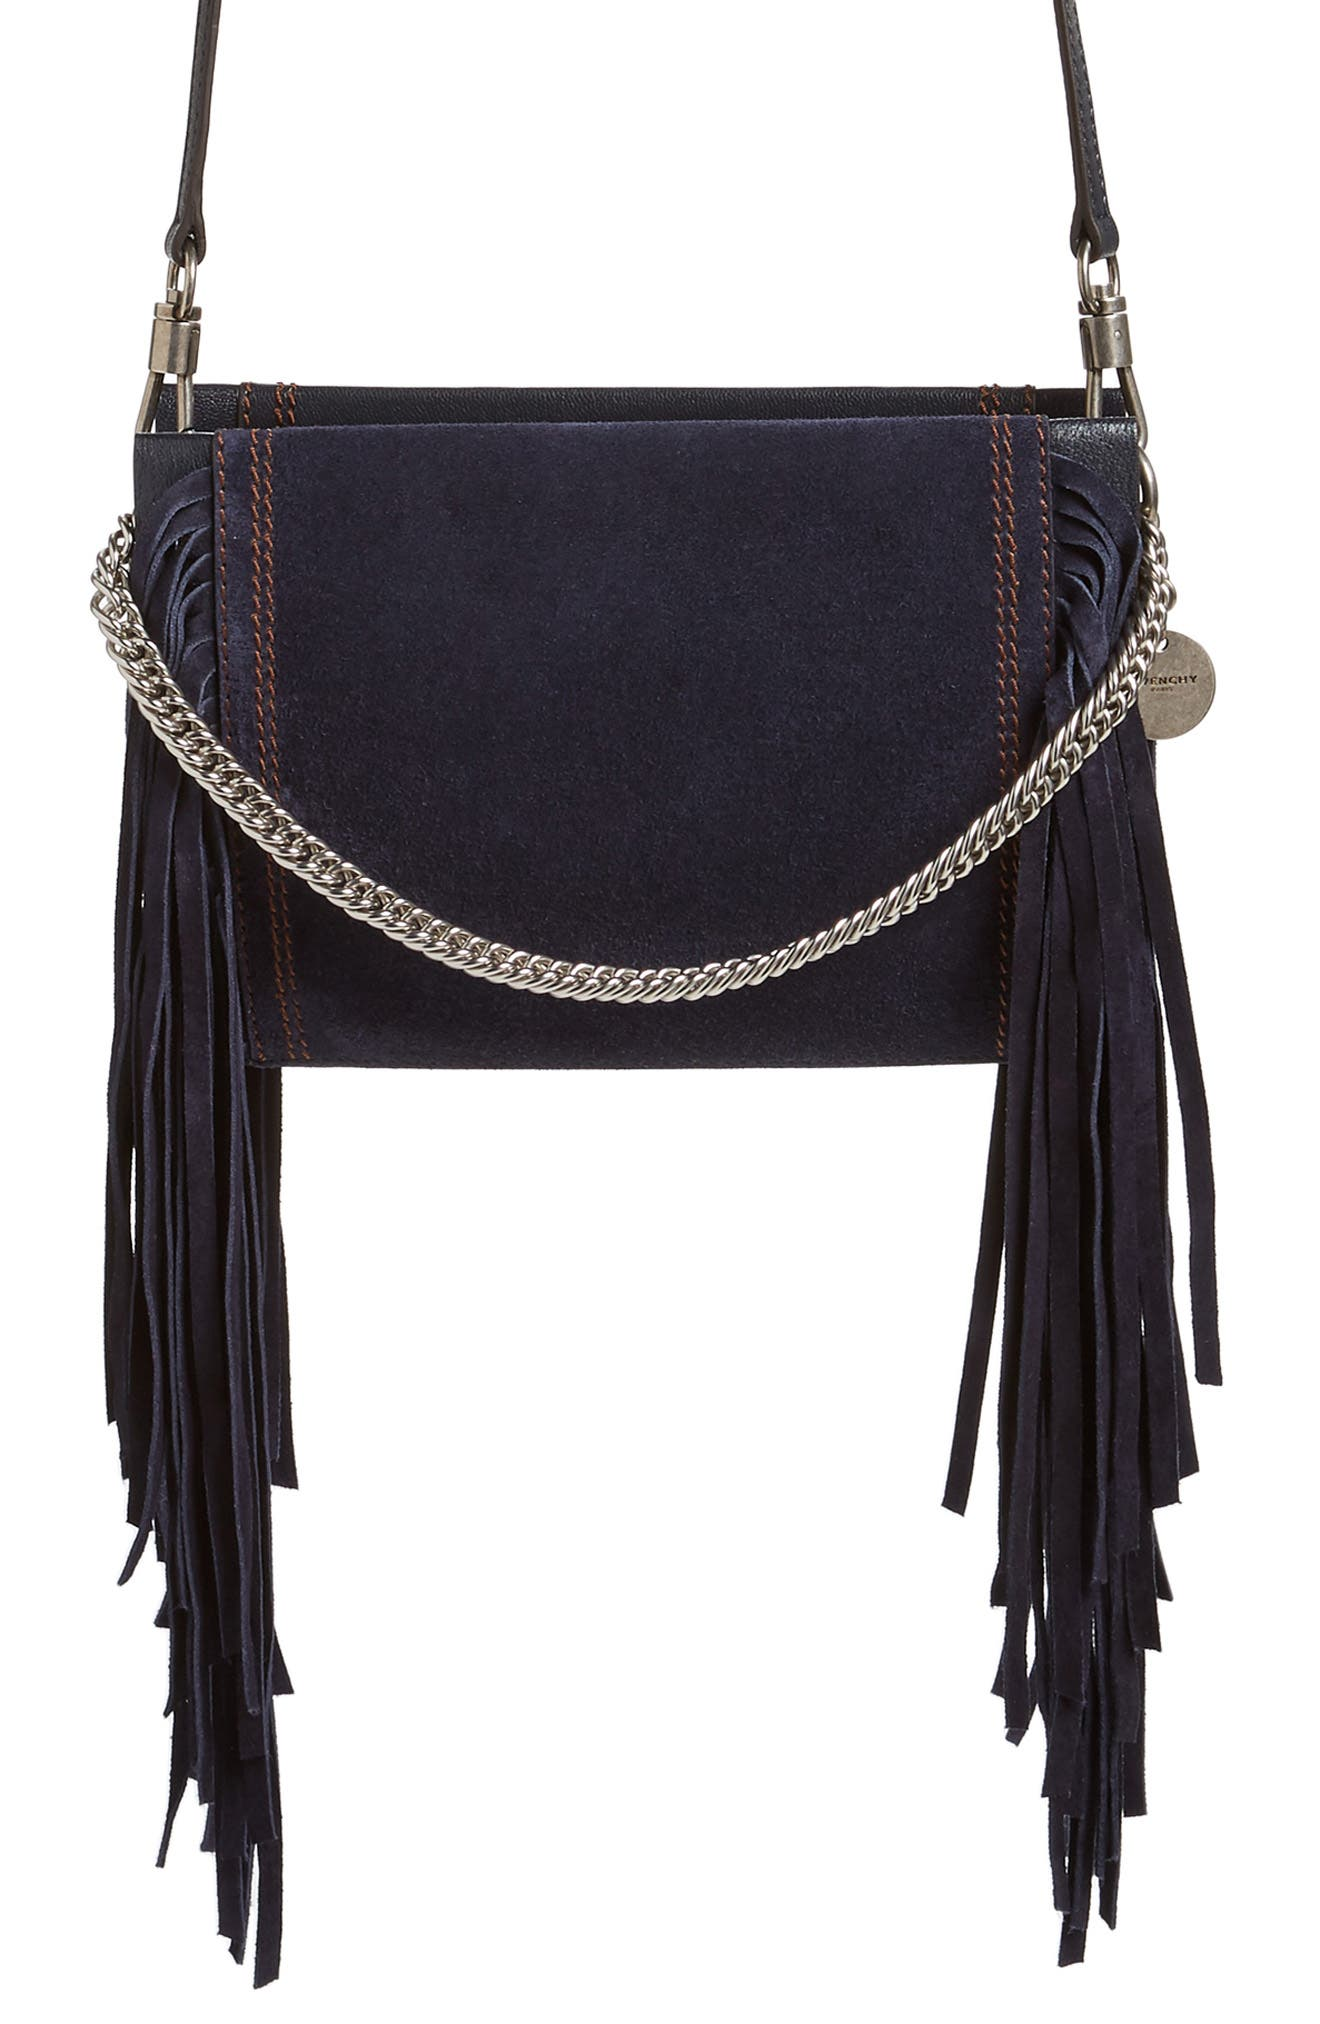 Cross 3 Fringe Leather Crossbody Bag,                             Main thumbnail 1, color,                             401